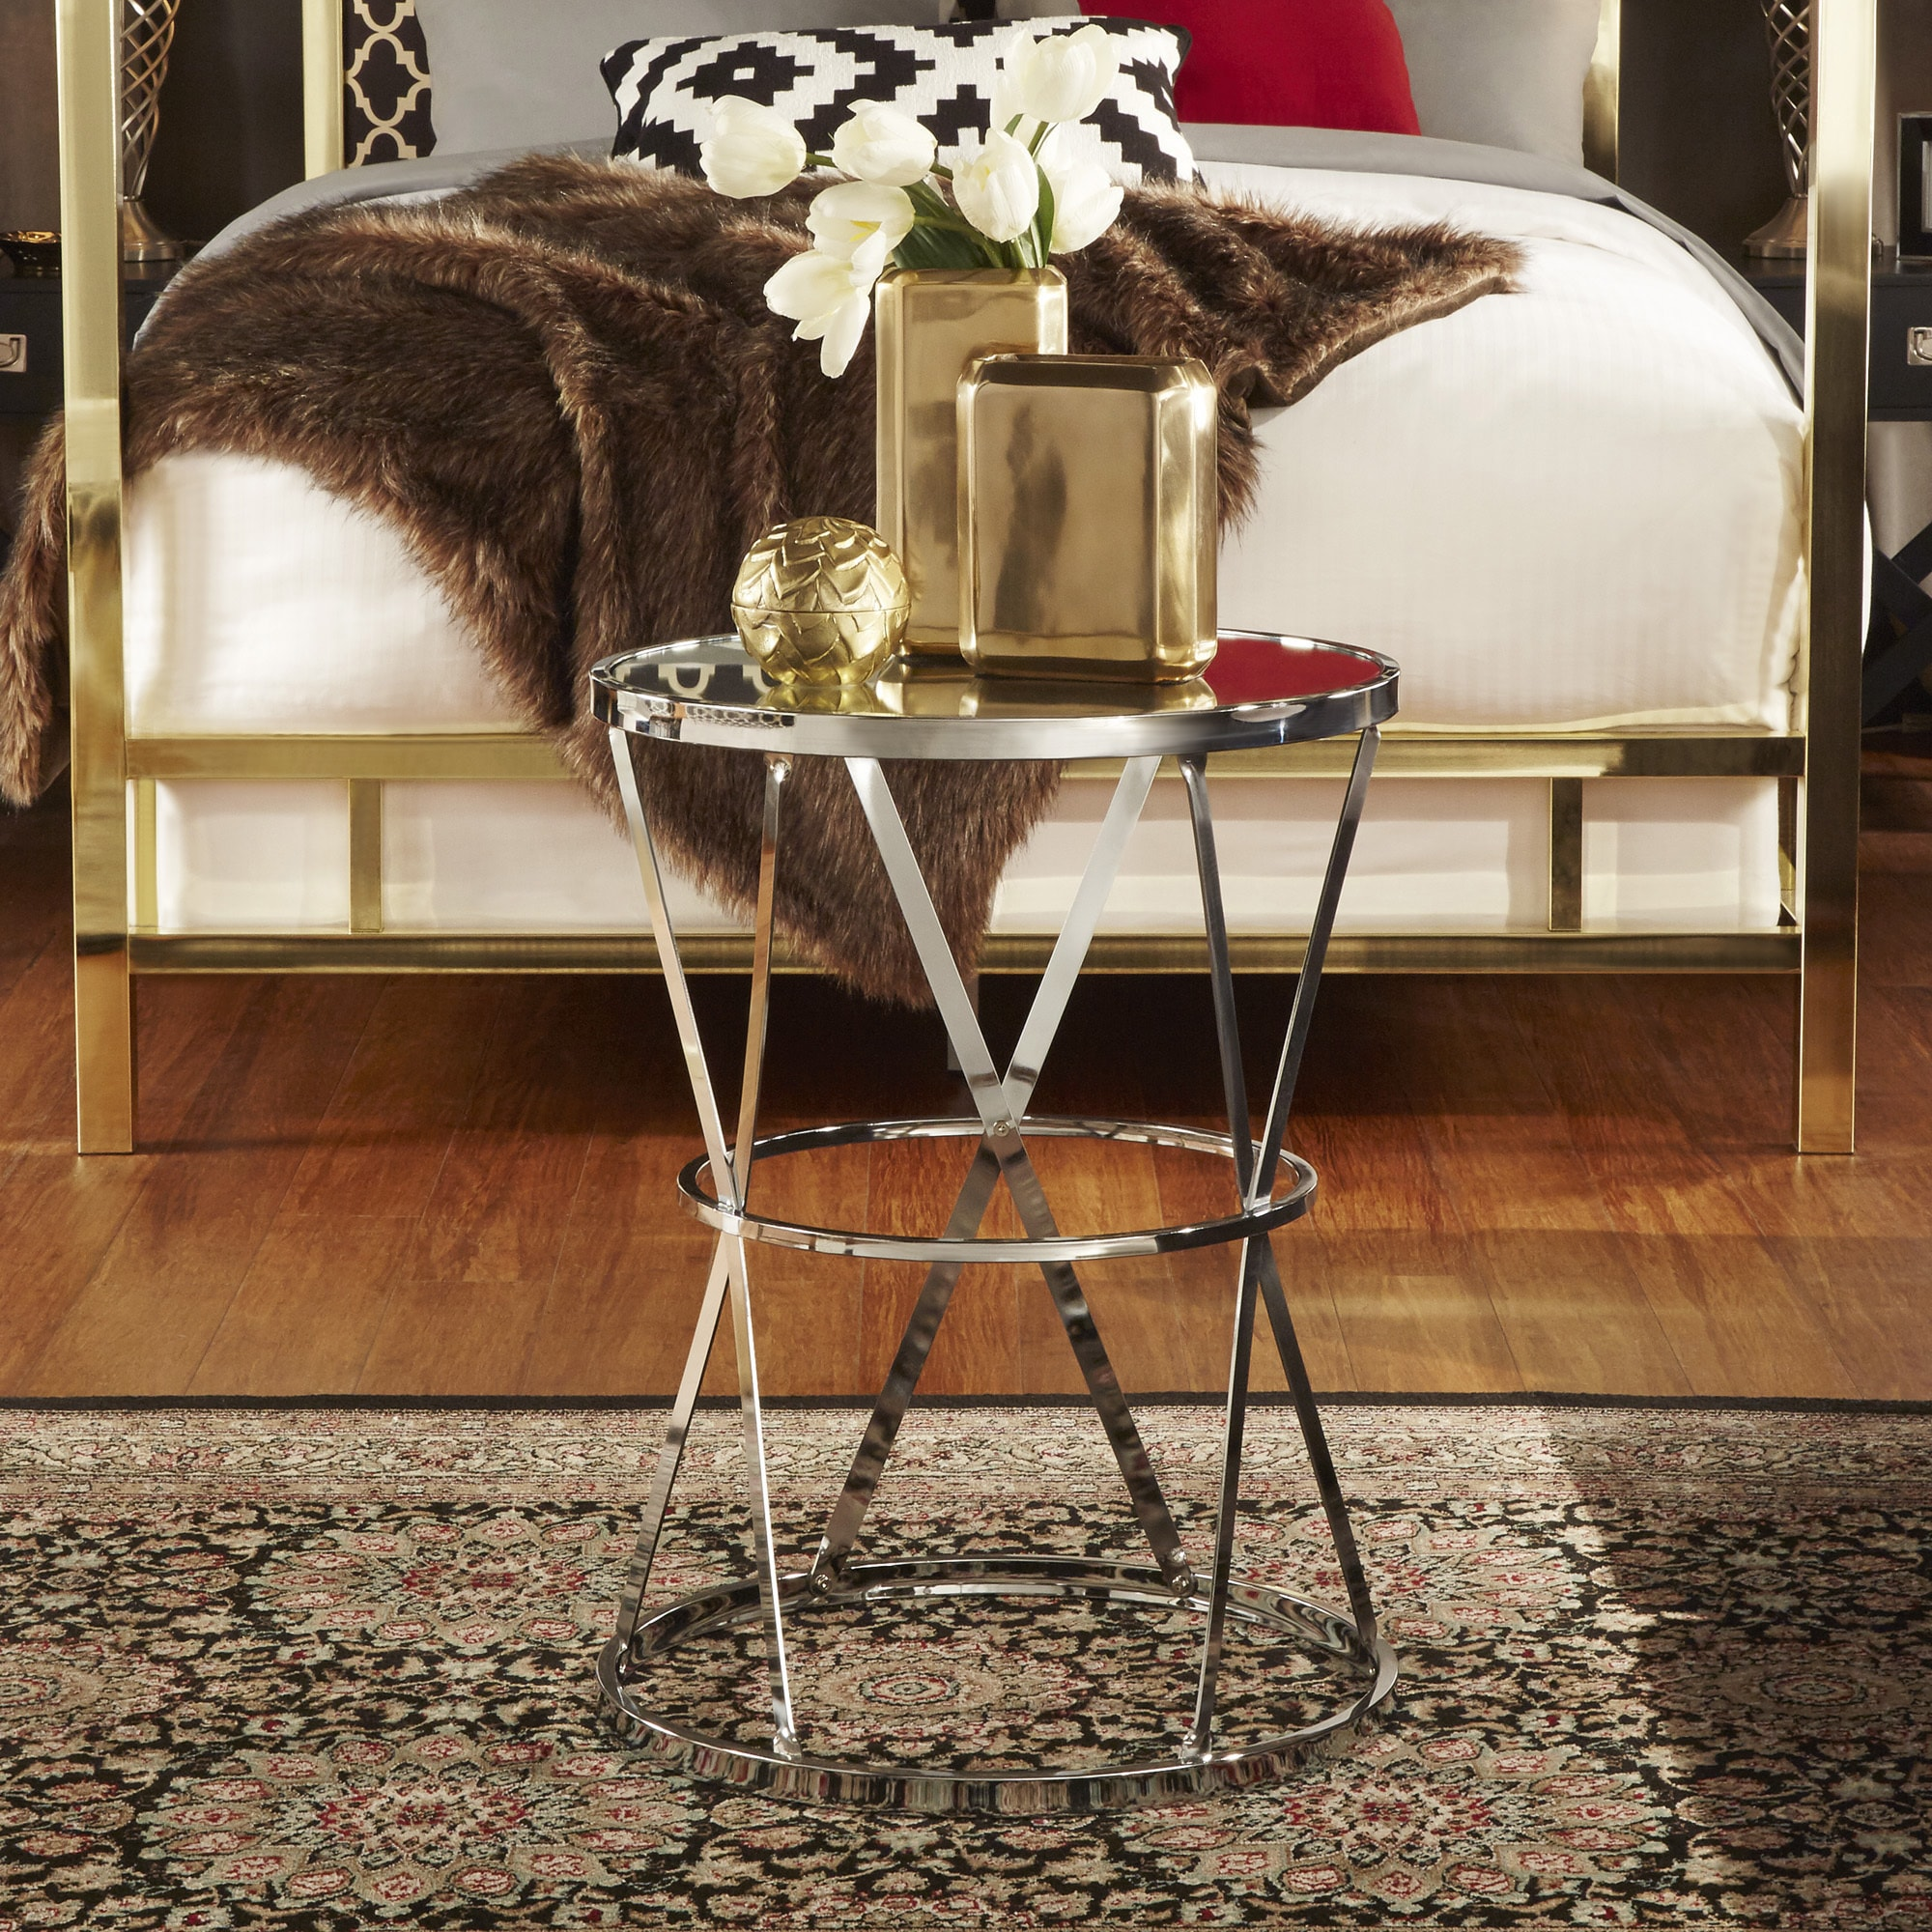 Berke Mirrored Top Round End Side Table by iNSPIRE Q Bold - Free Shipping  Today - Overstock.com - 17492429